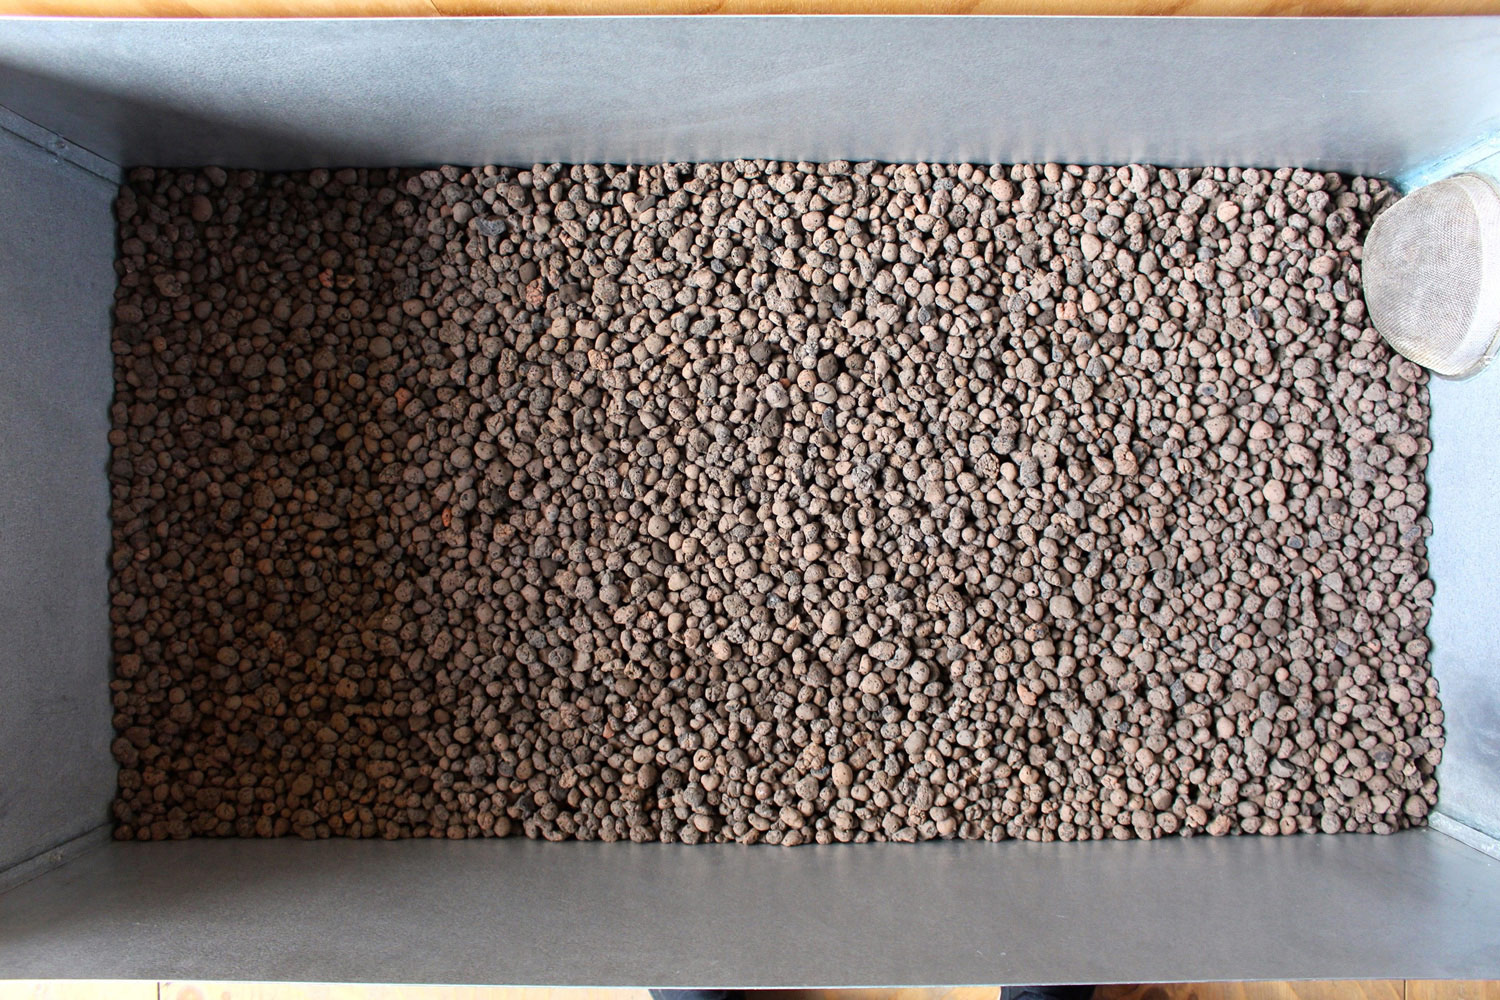 Sand and leca stone biofilm filter